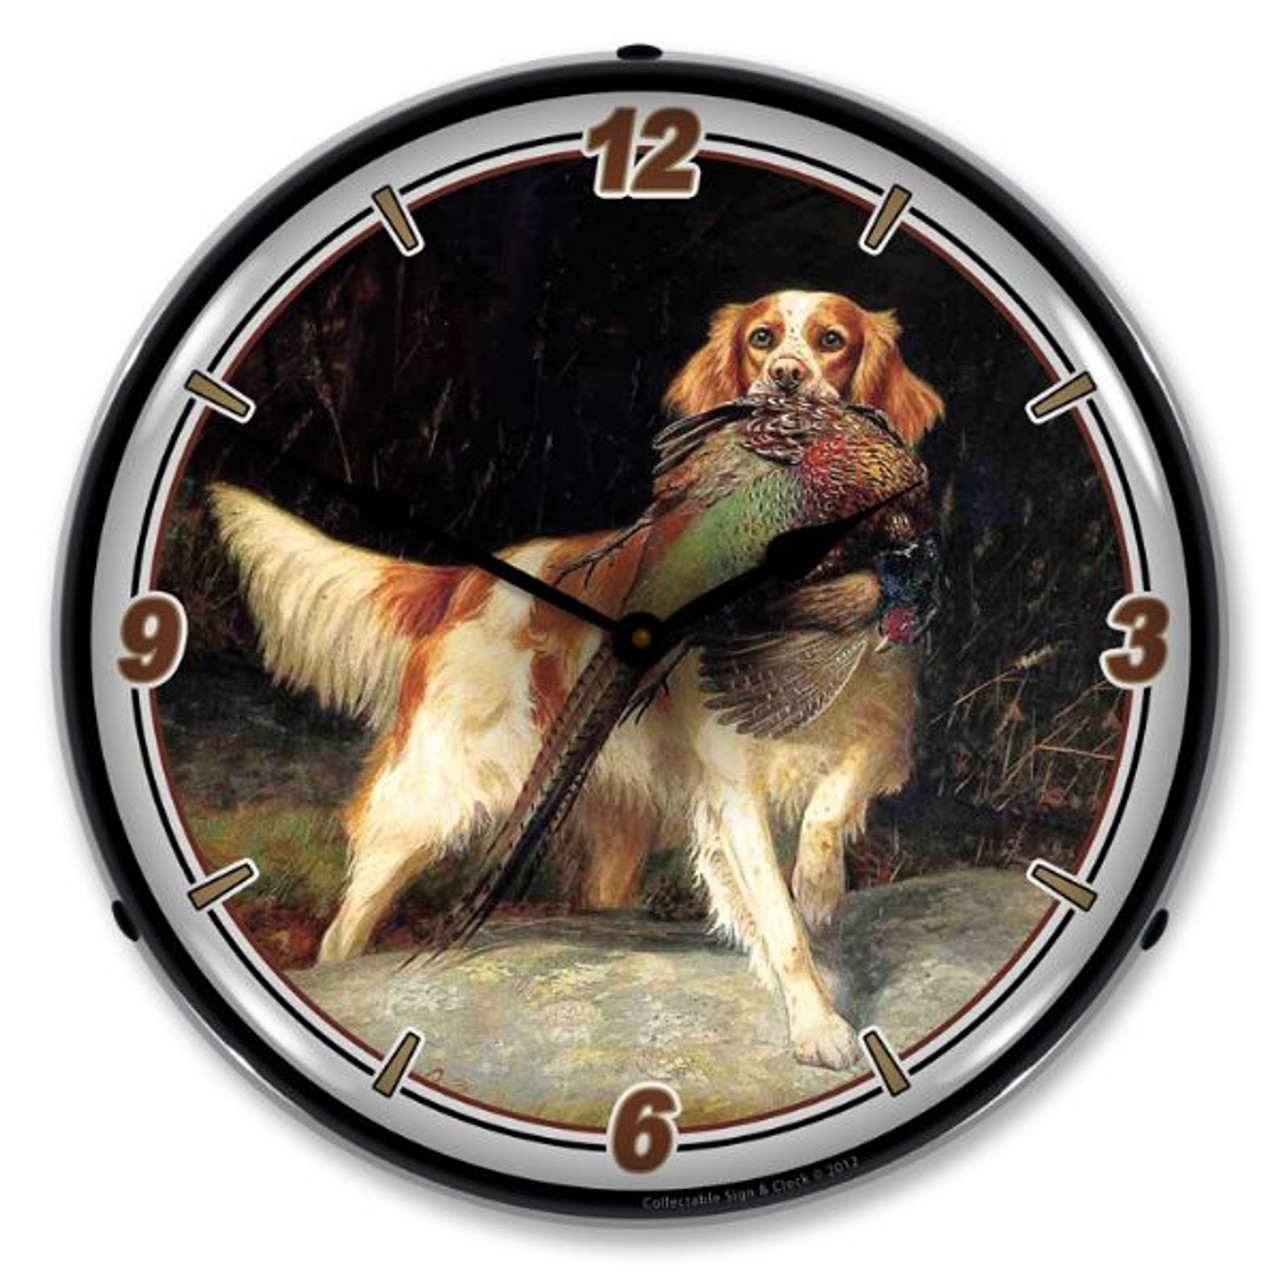 Bird and Setter Lighted Wall Clock 14 x 14 Inches